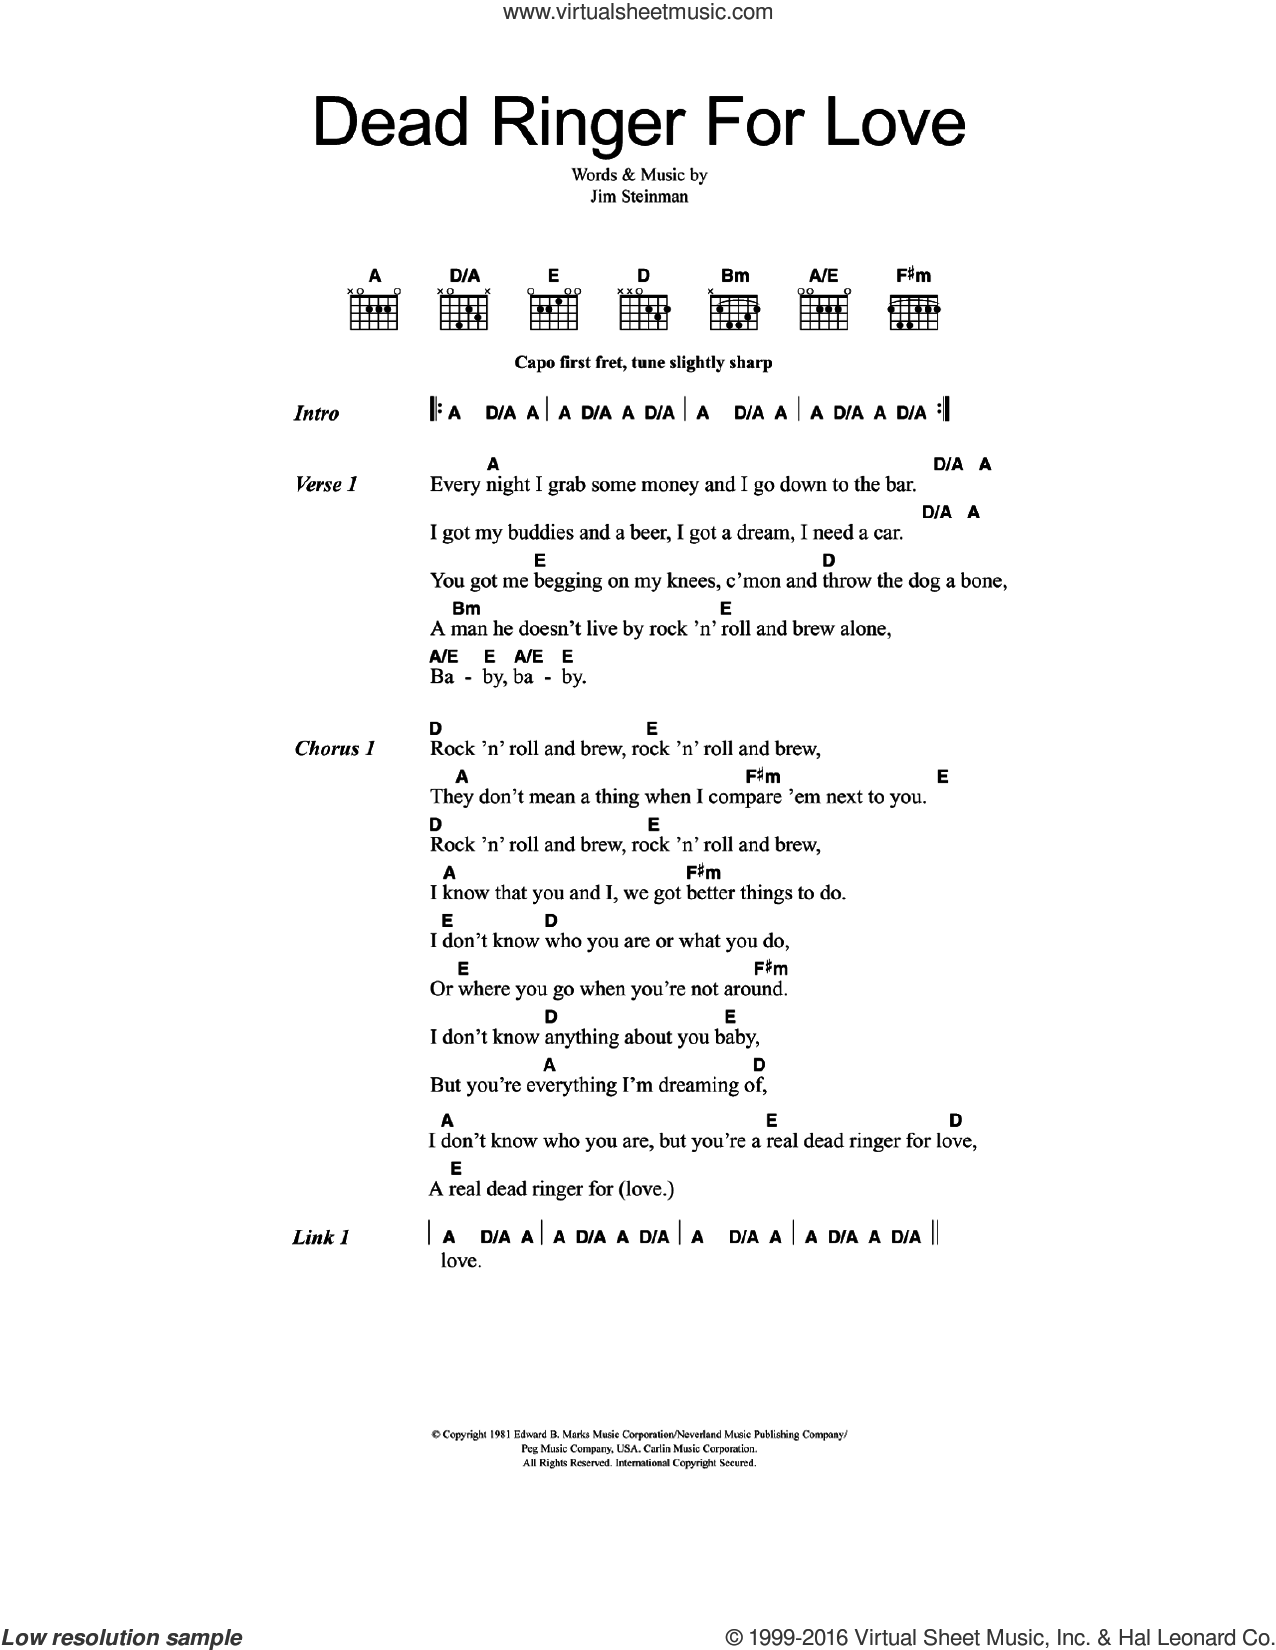 Dead Ringer For Love sheet music for guitar (chords) by Cher, Meat Loaf and Jim Steinman, intermediate